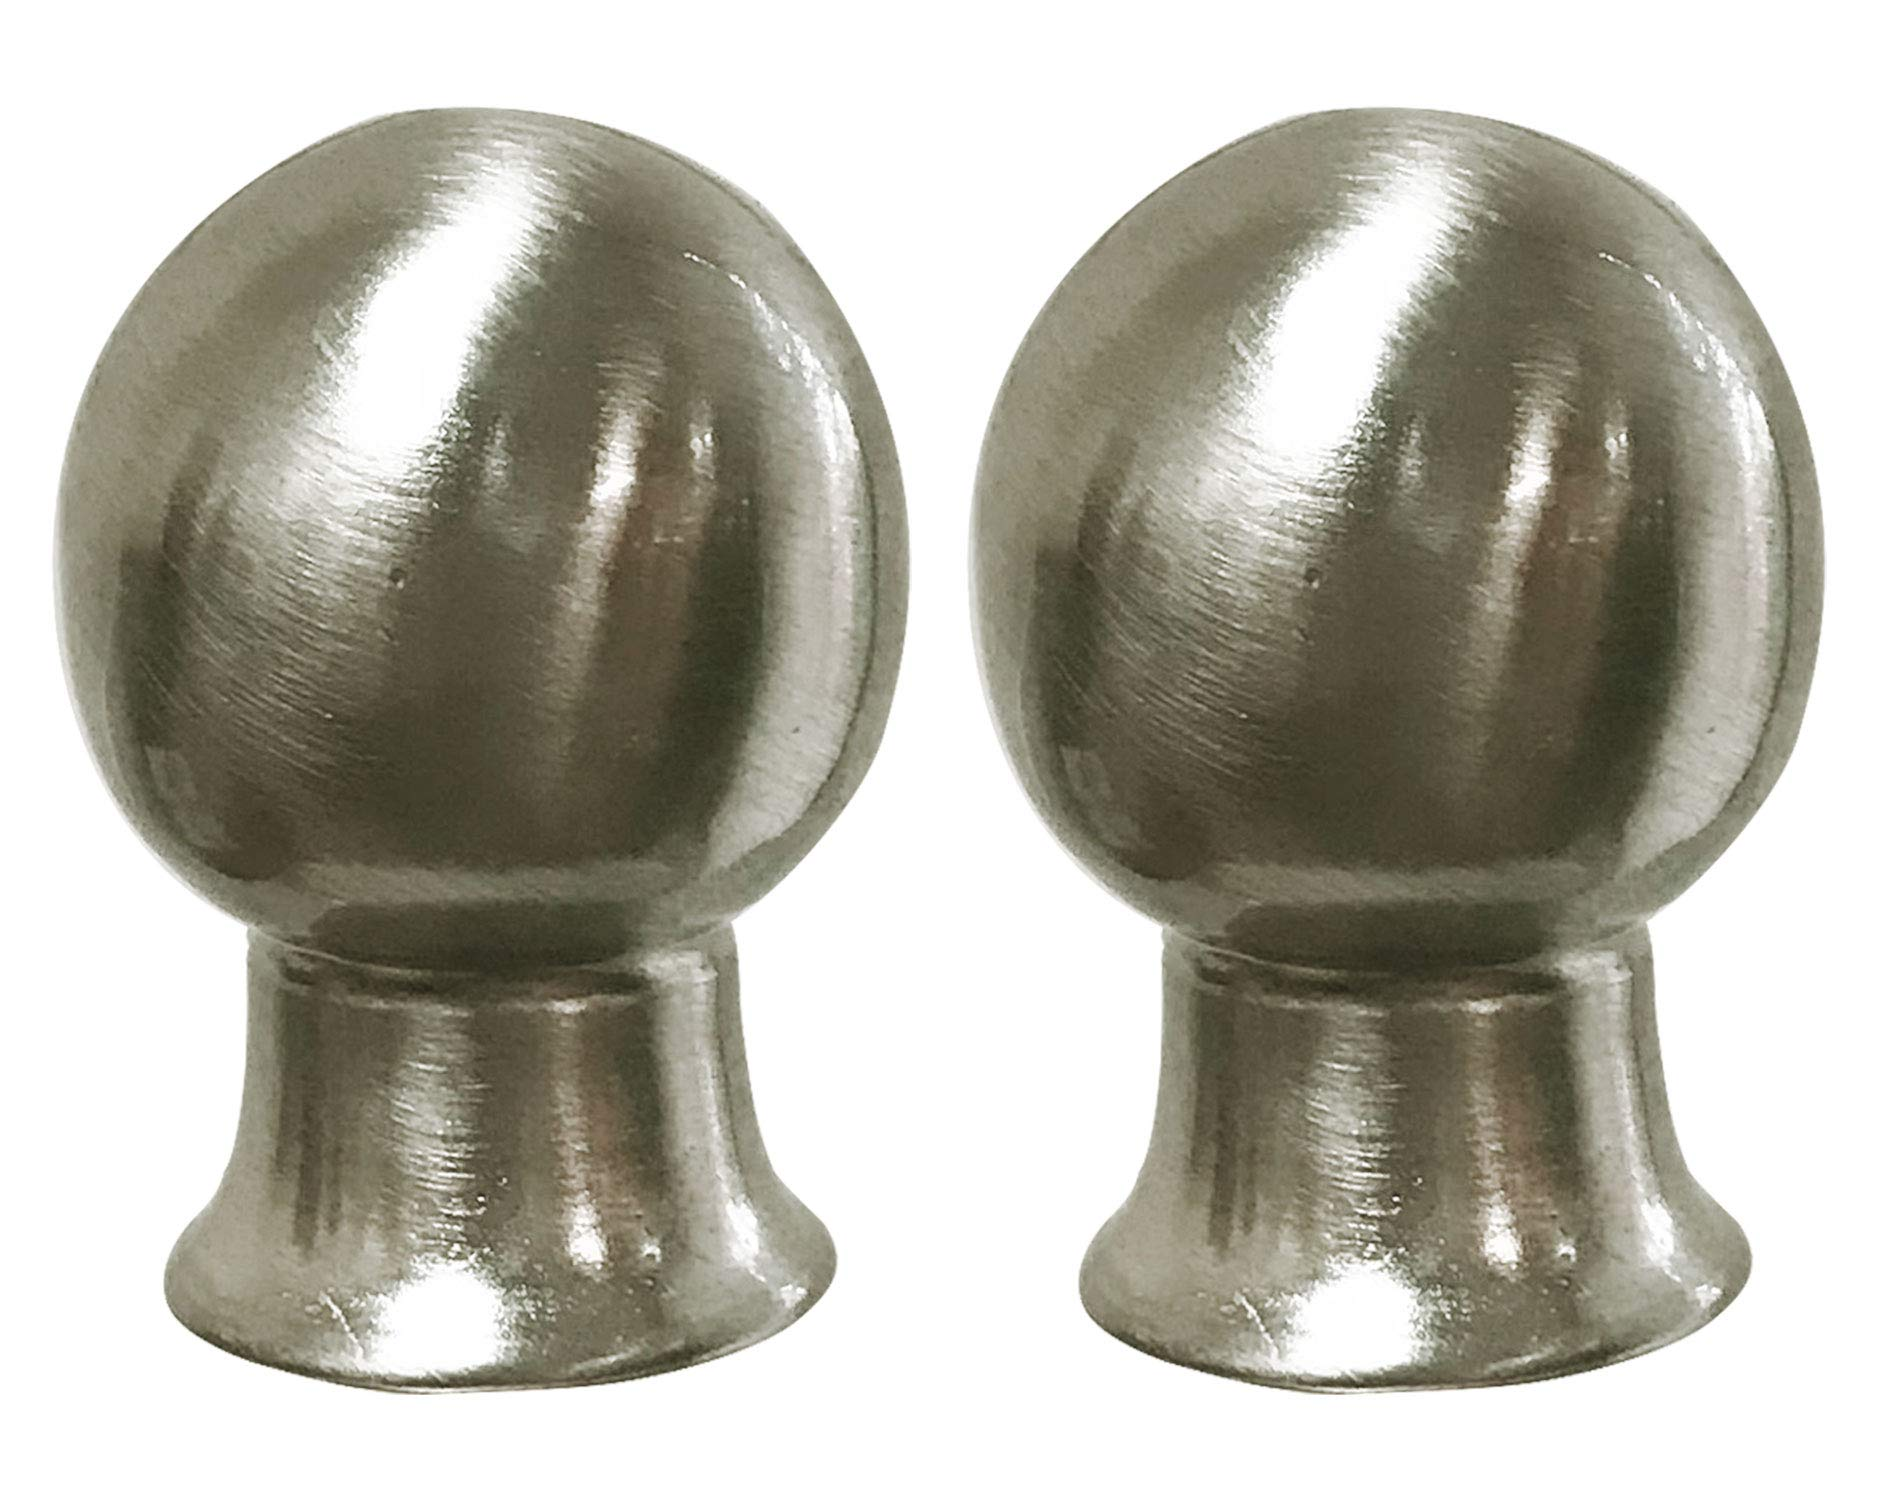 Royal Designs F-7013BN-2 Ball Finial, Brush Nickel, Set of 2